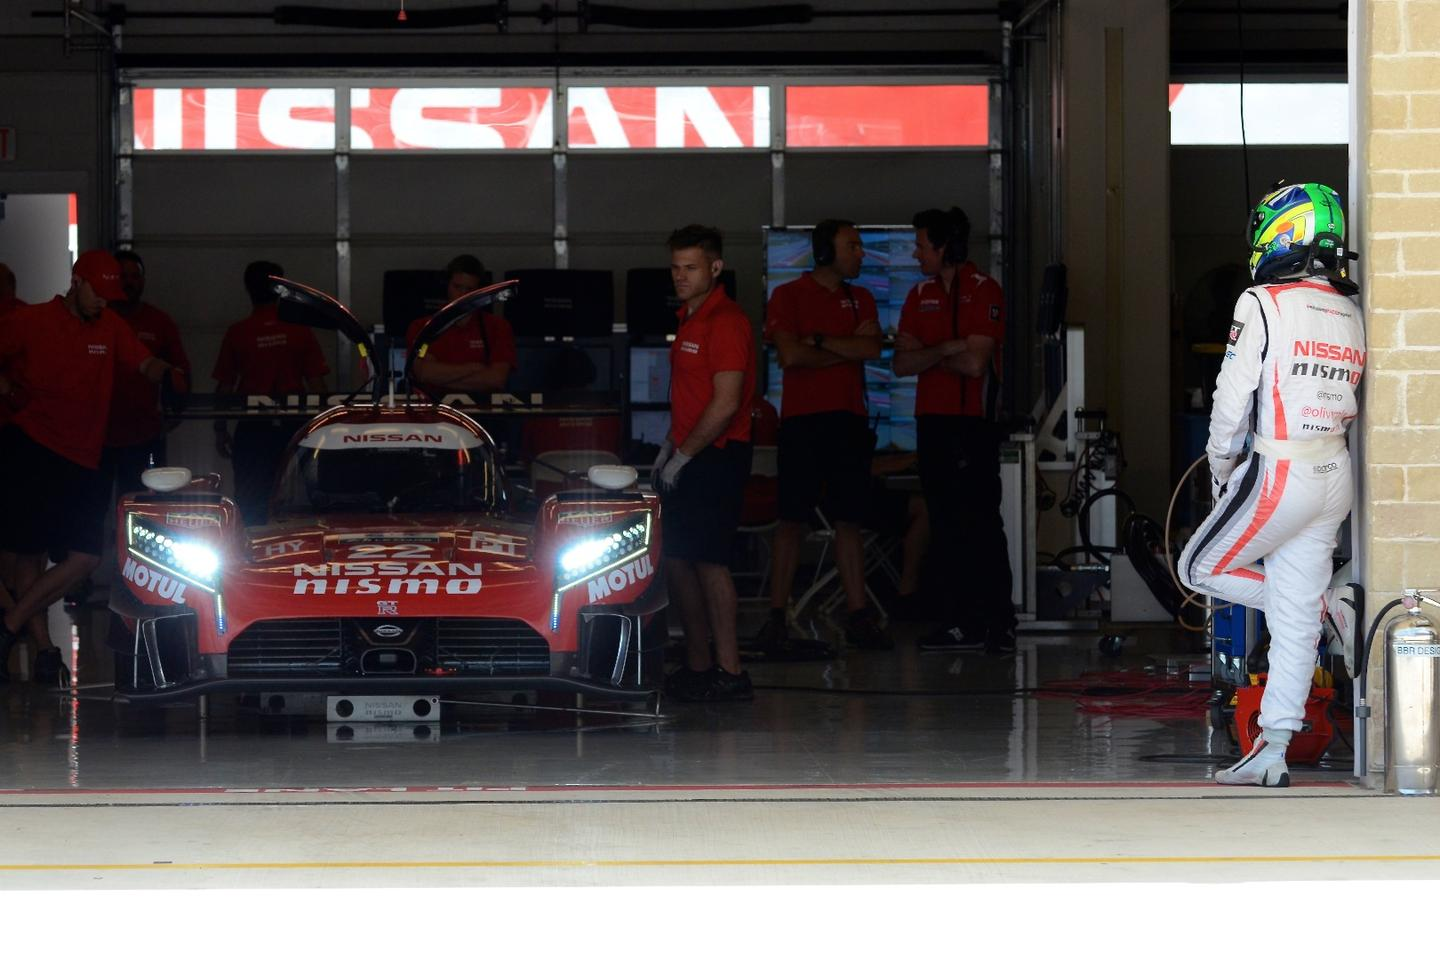 Nissan will reassess its LMP1 program after more testing